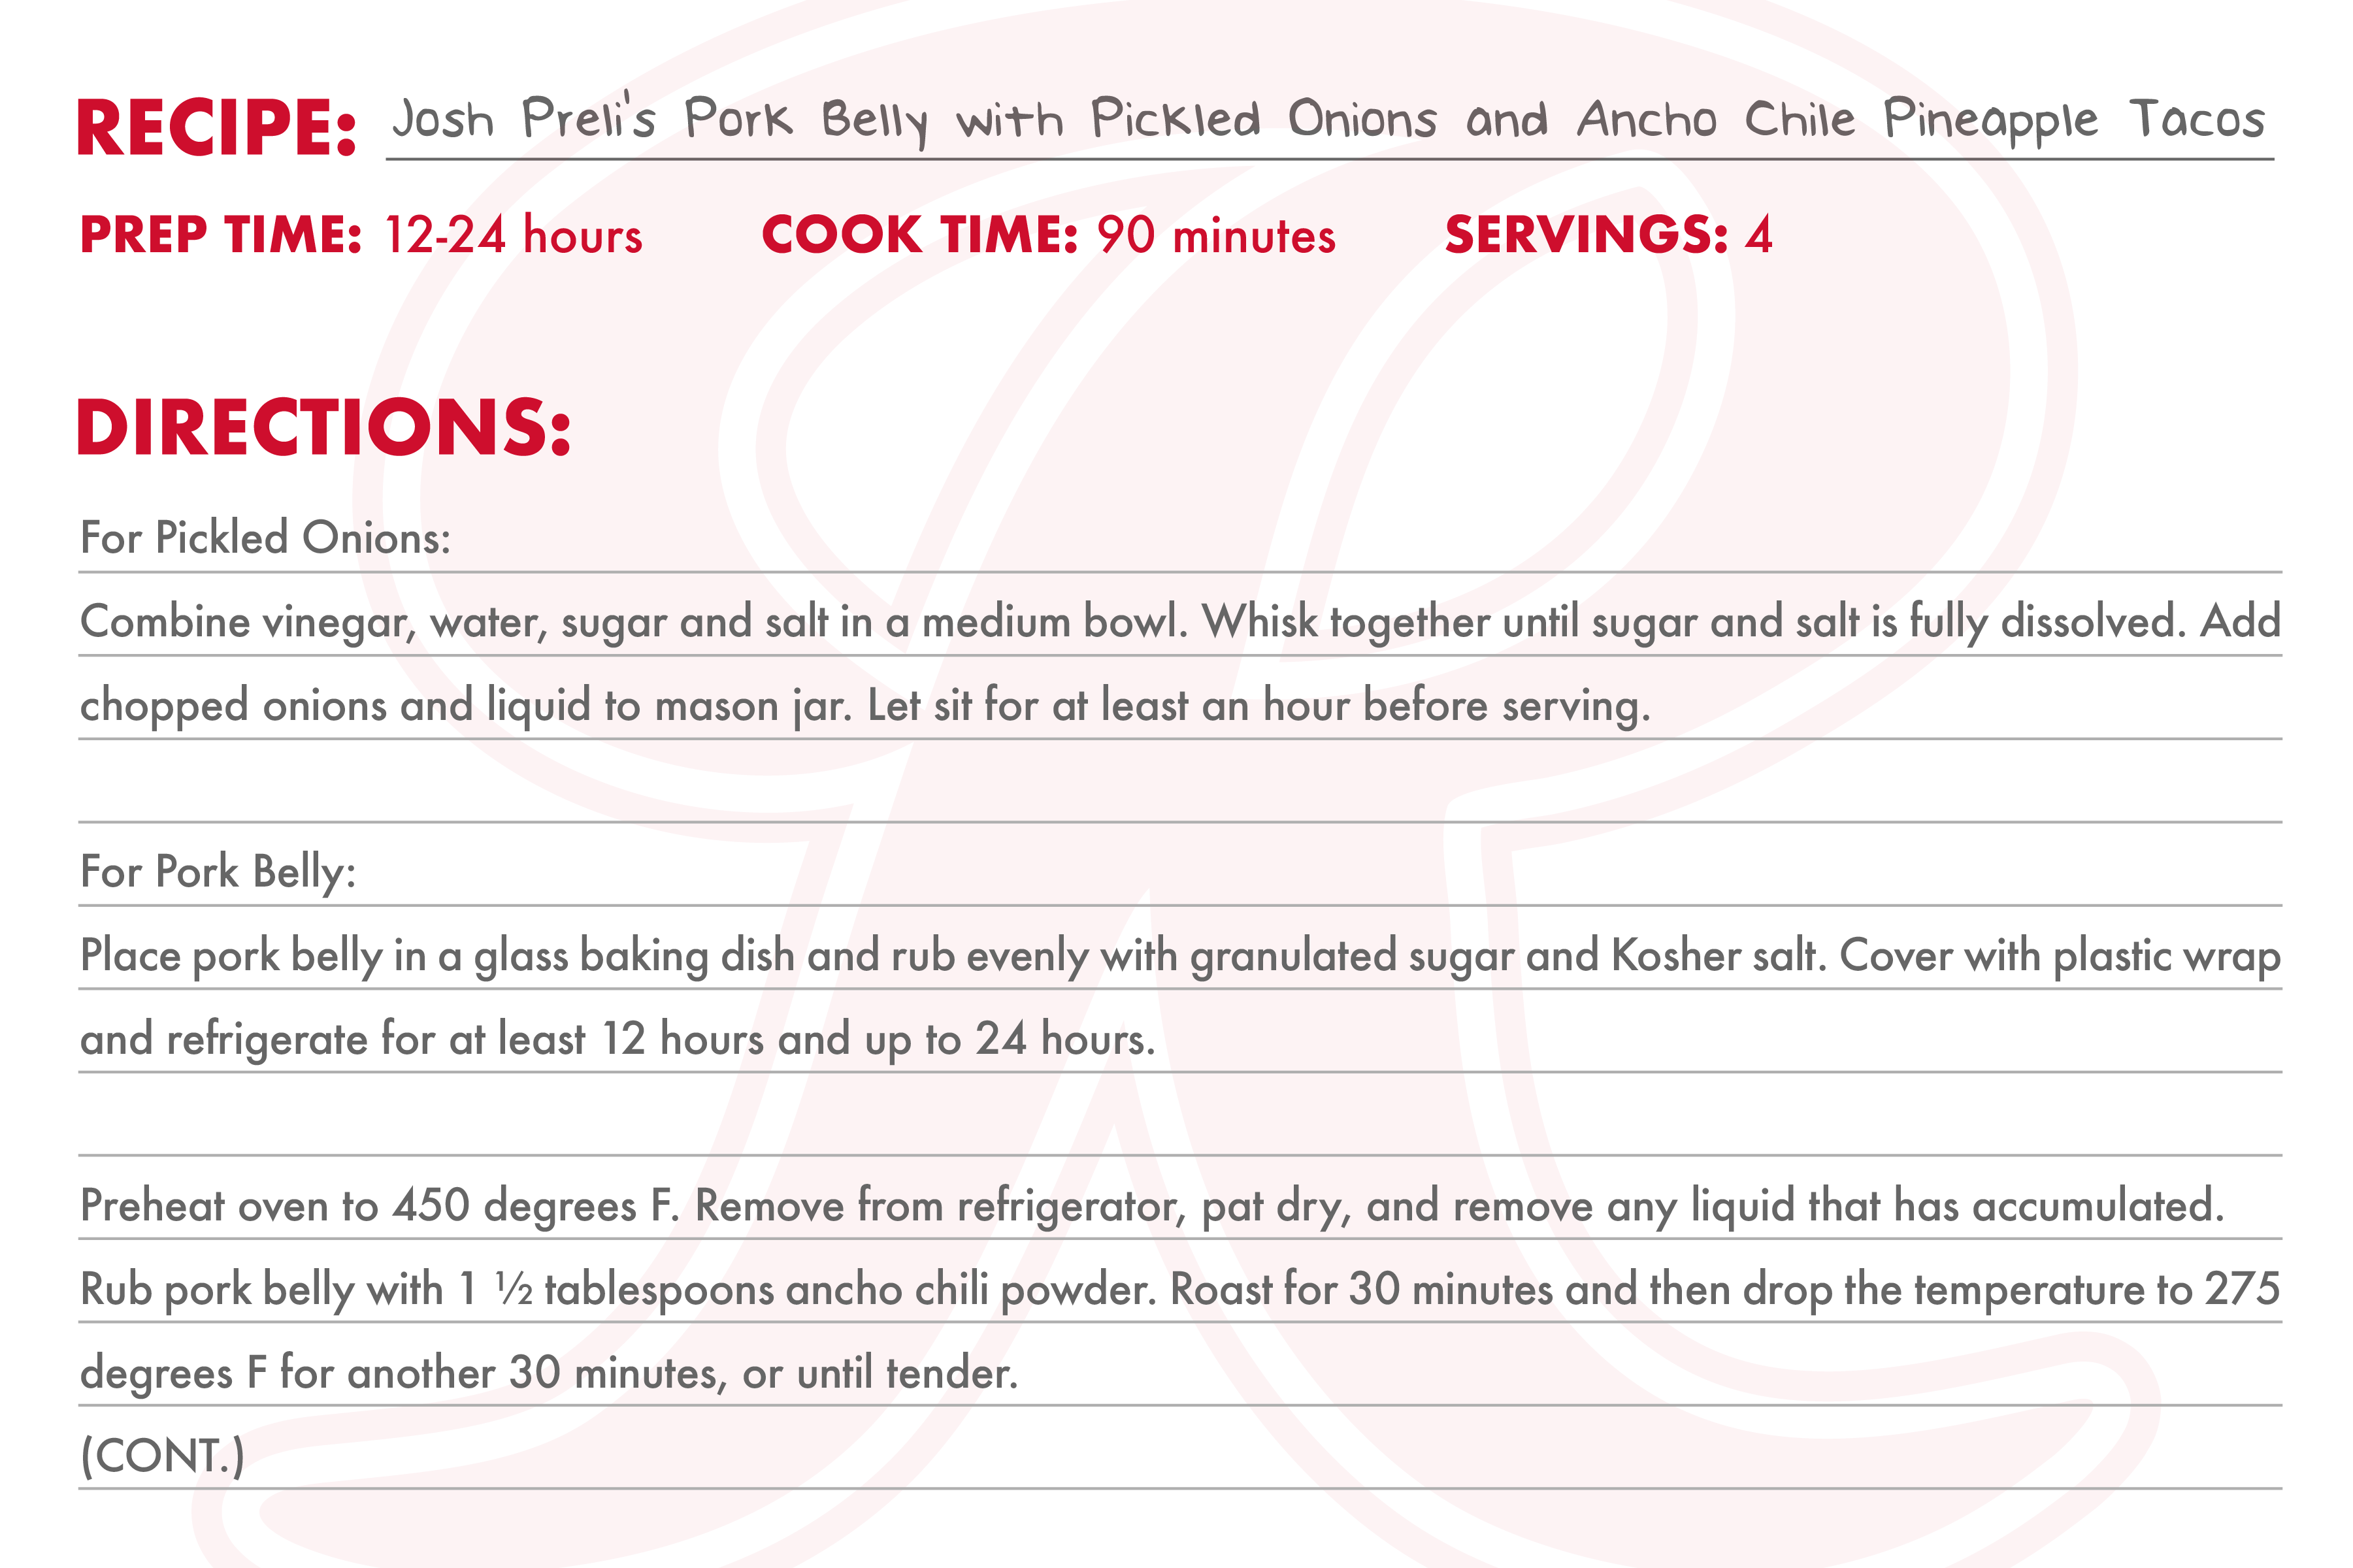 Recipe Card 2 for Josh Preli's Pork Belly with Pickled Onions and Ancho Chile Pineapple Tacos